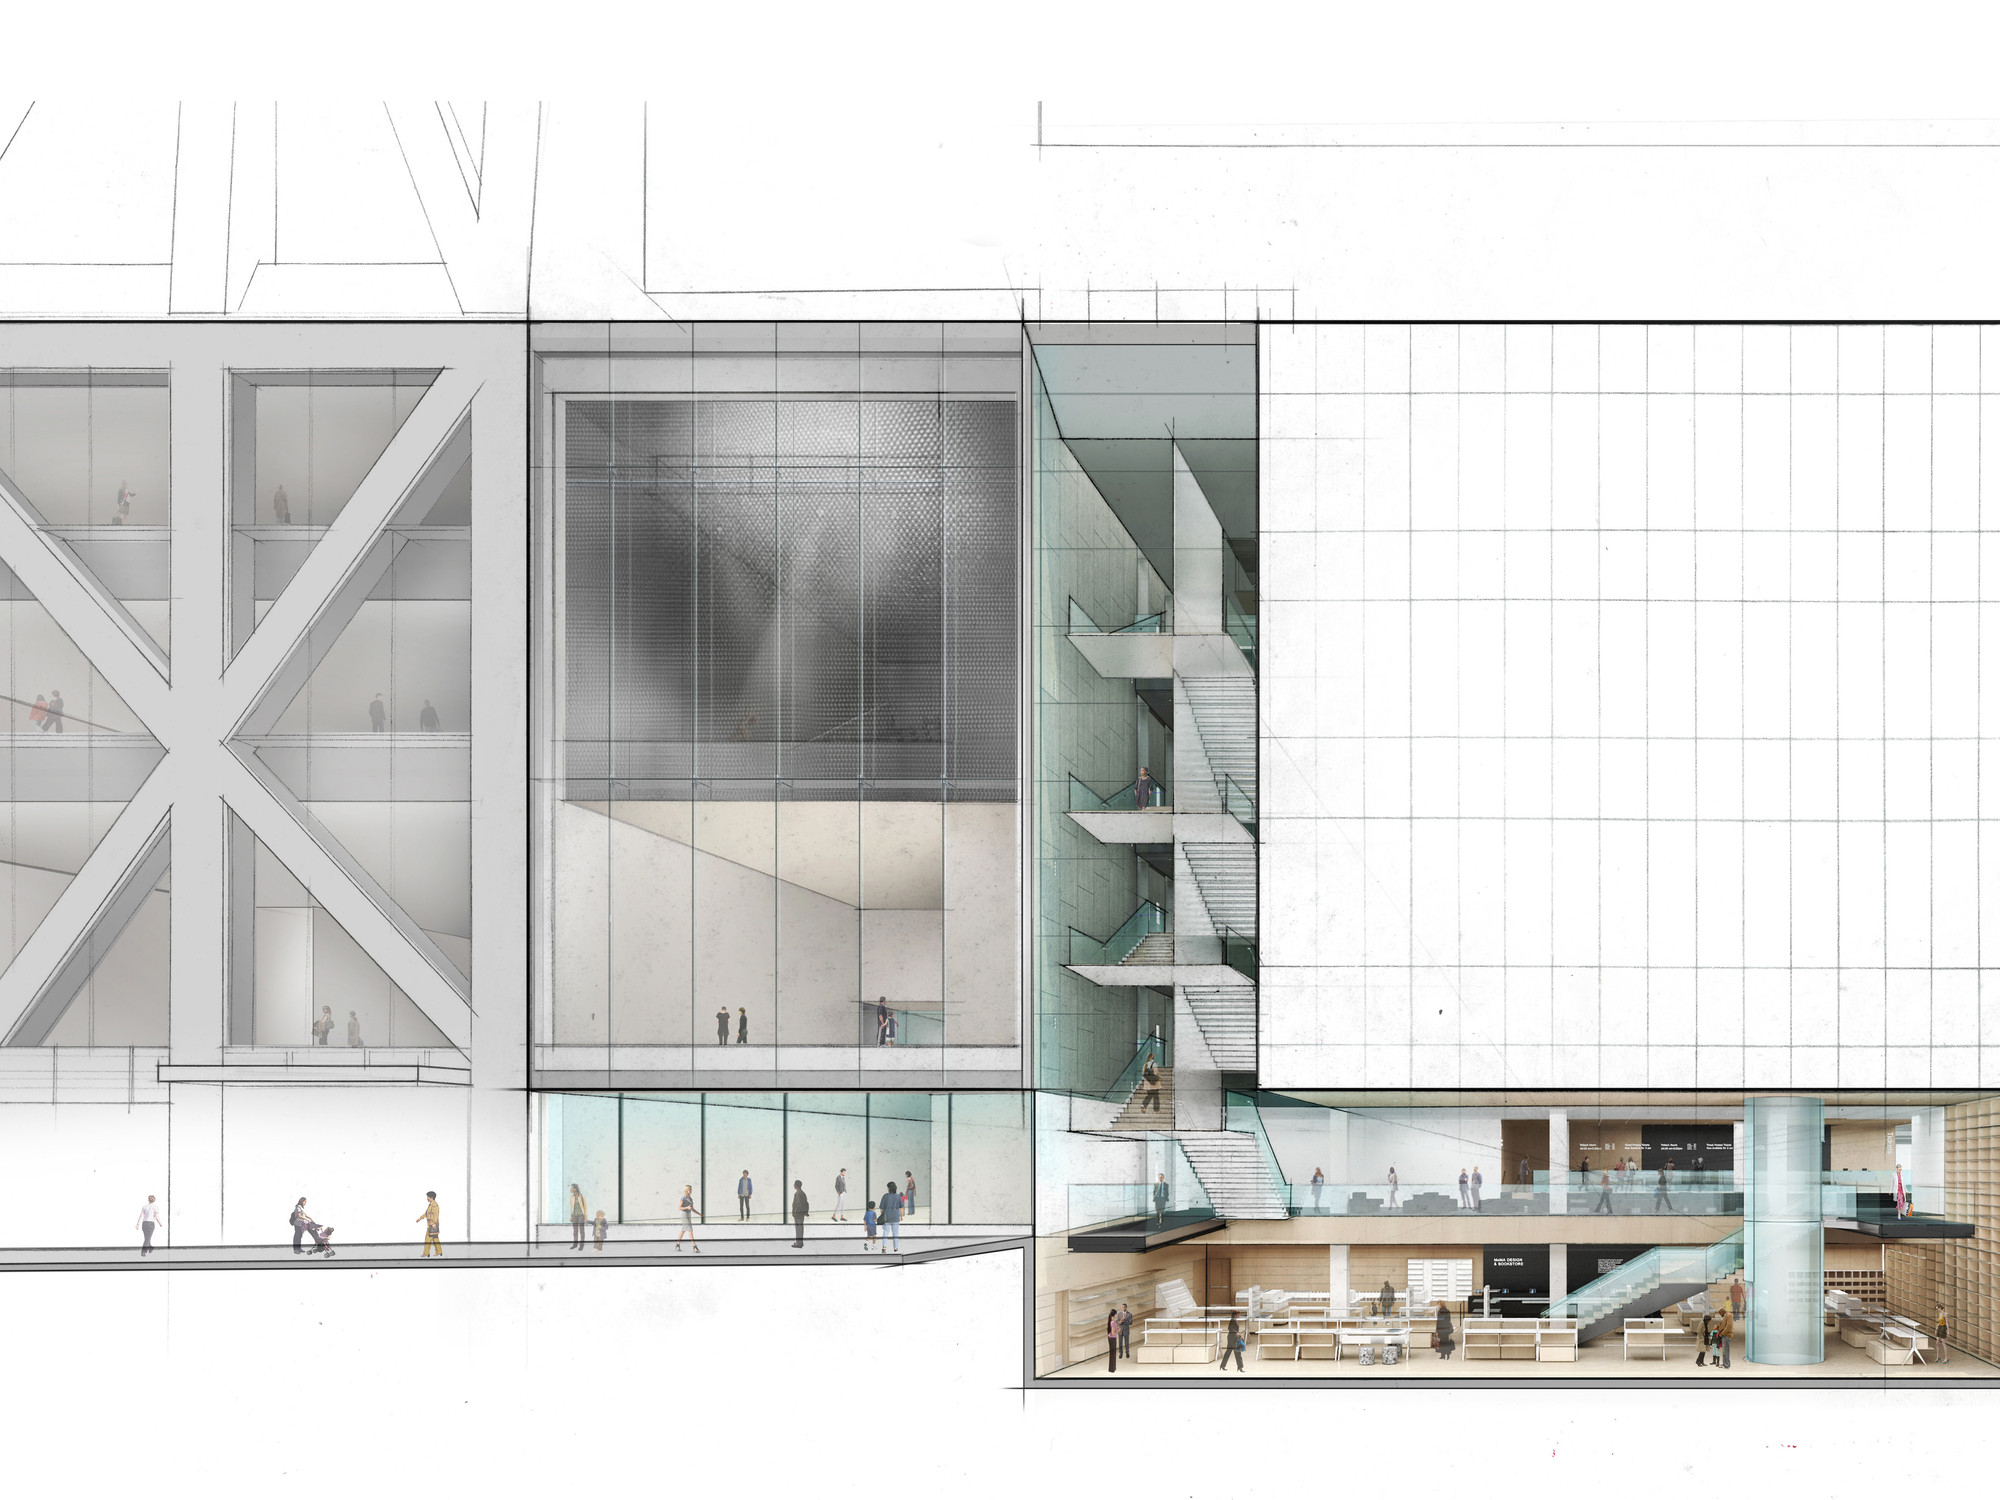 Our building project | MoMA